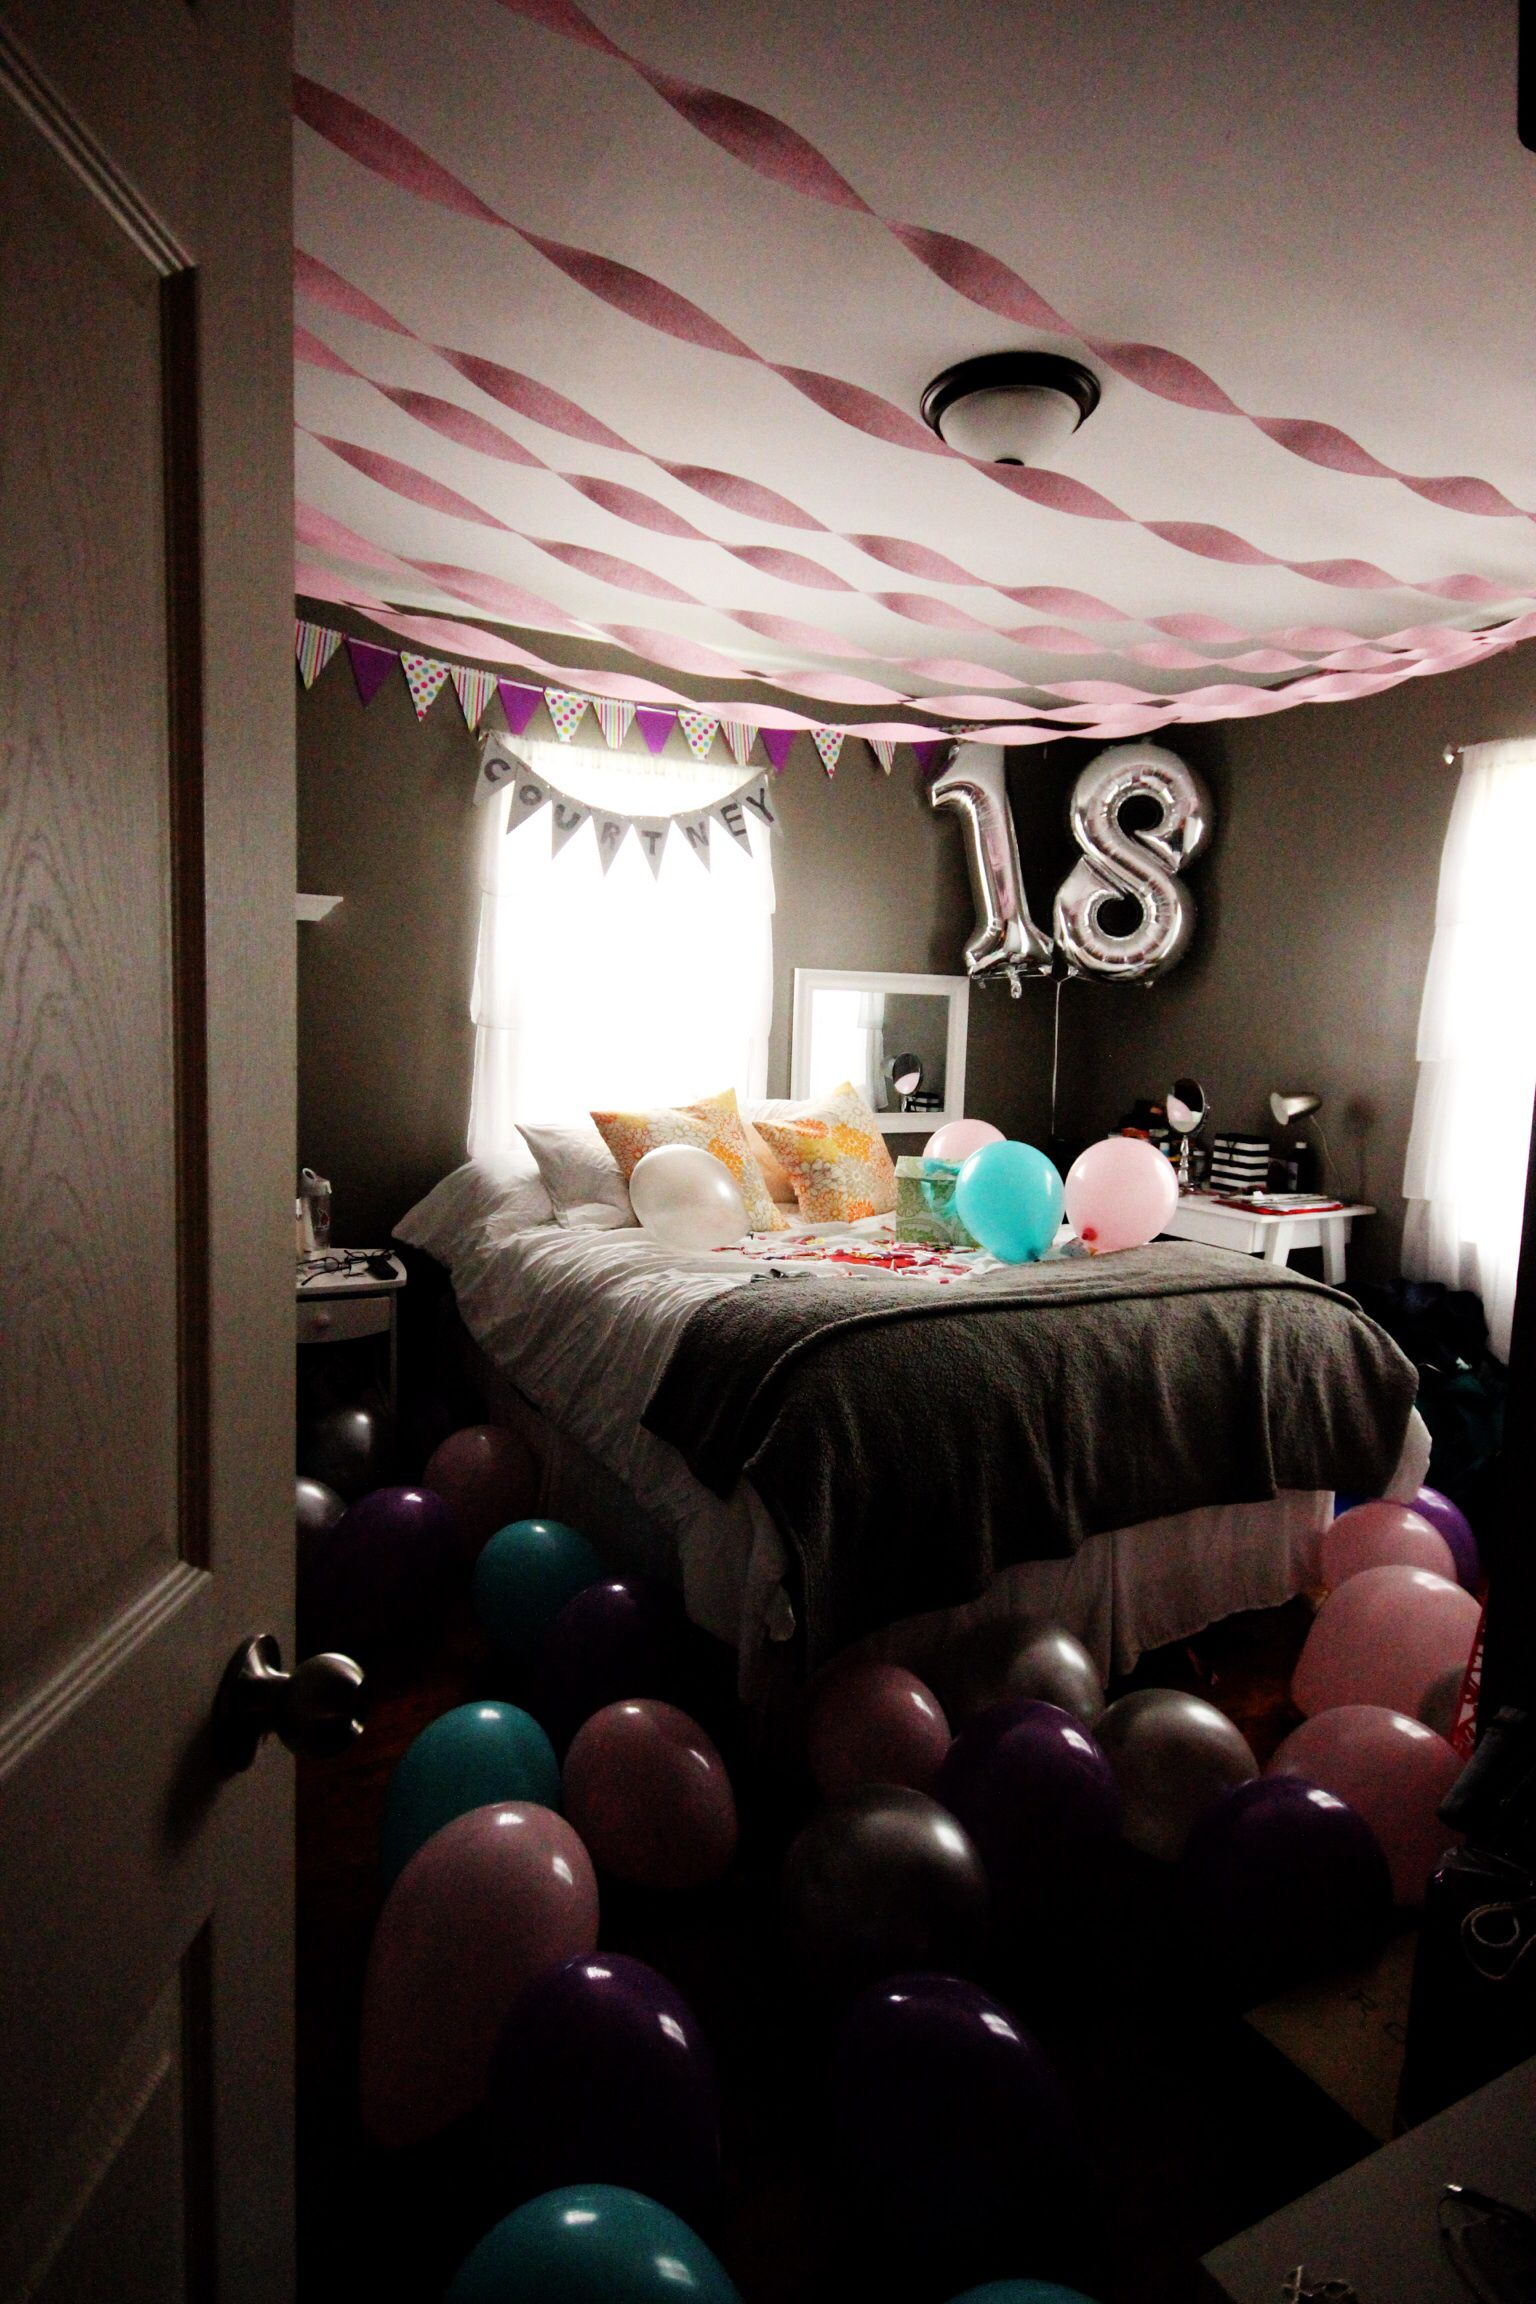 Bedroom surprise for birthday it 39 s me kiersten marie for Room decor ideas for husband birthday